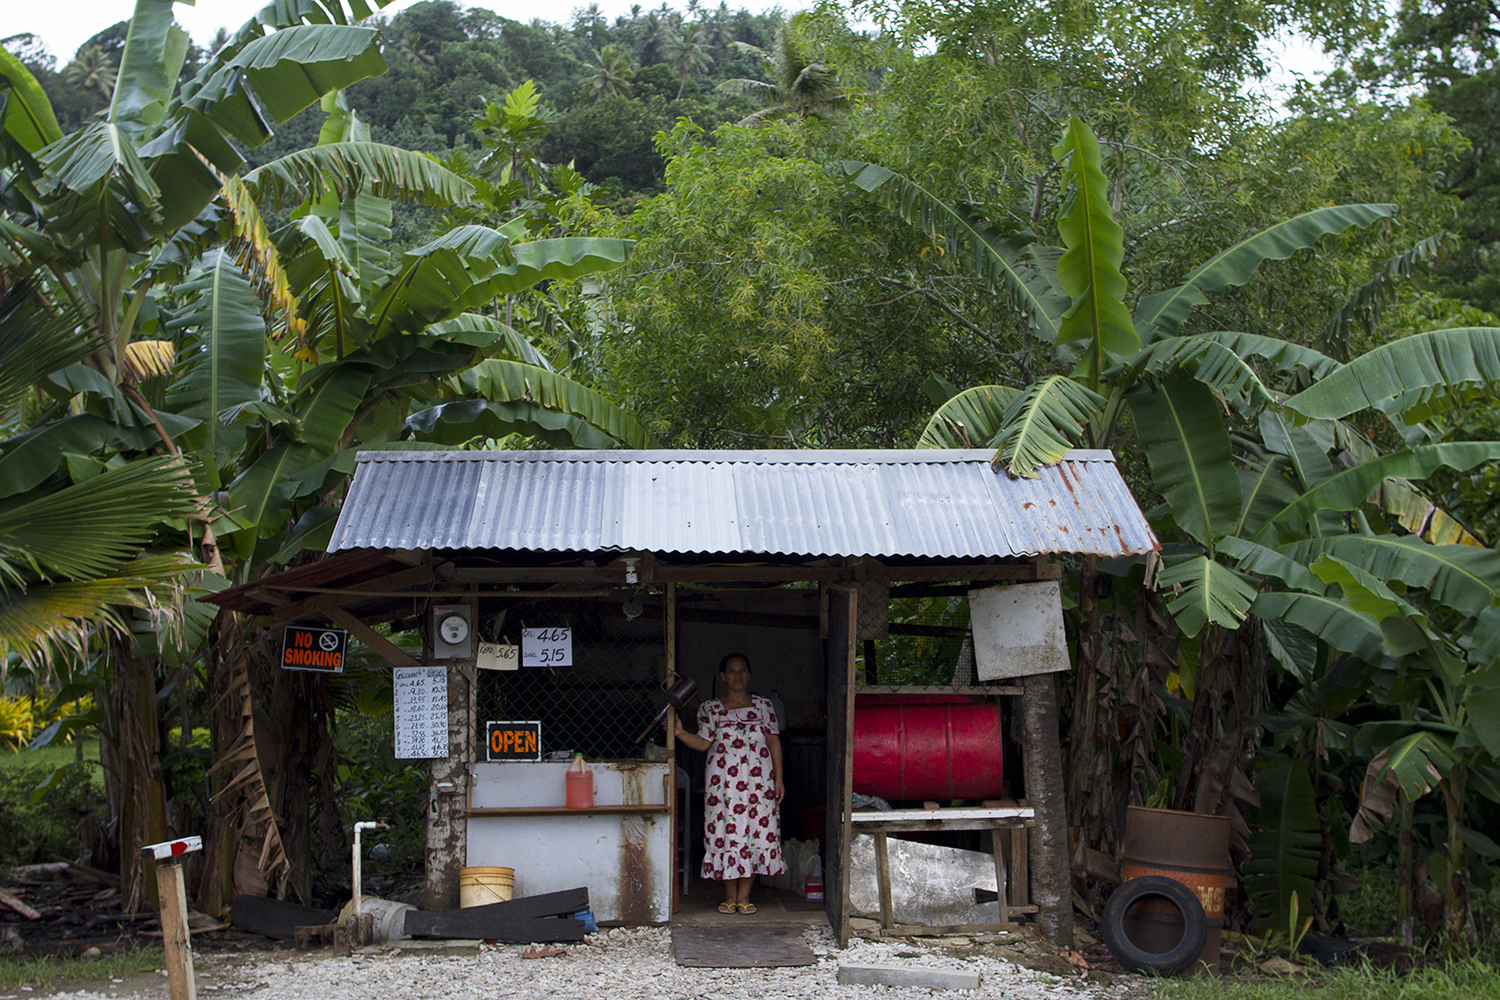 <p>A gas station in Sansrik underscores the rural character of the island.</p>